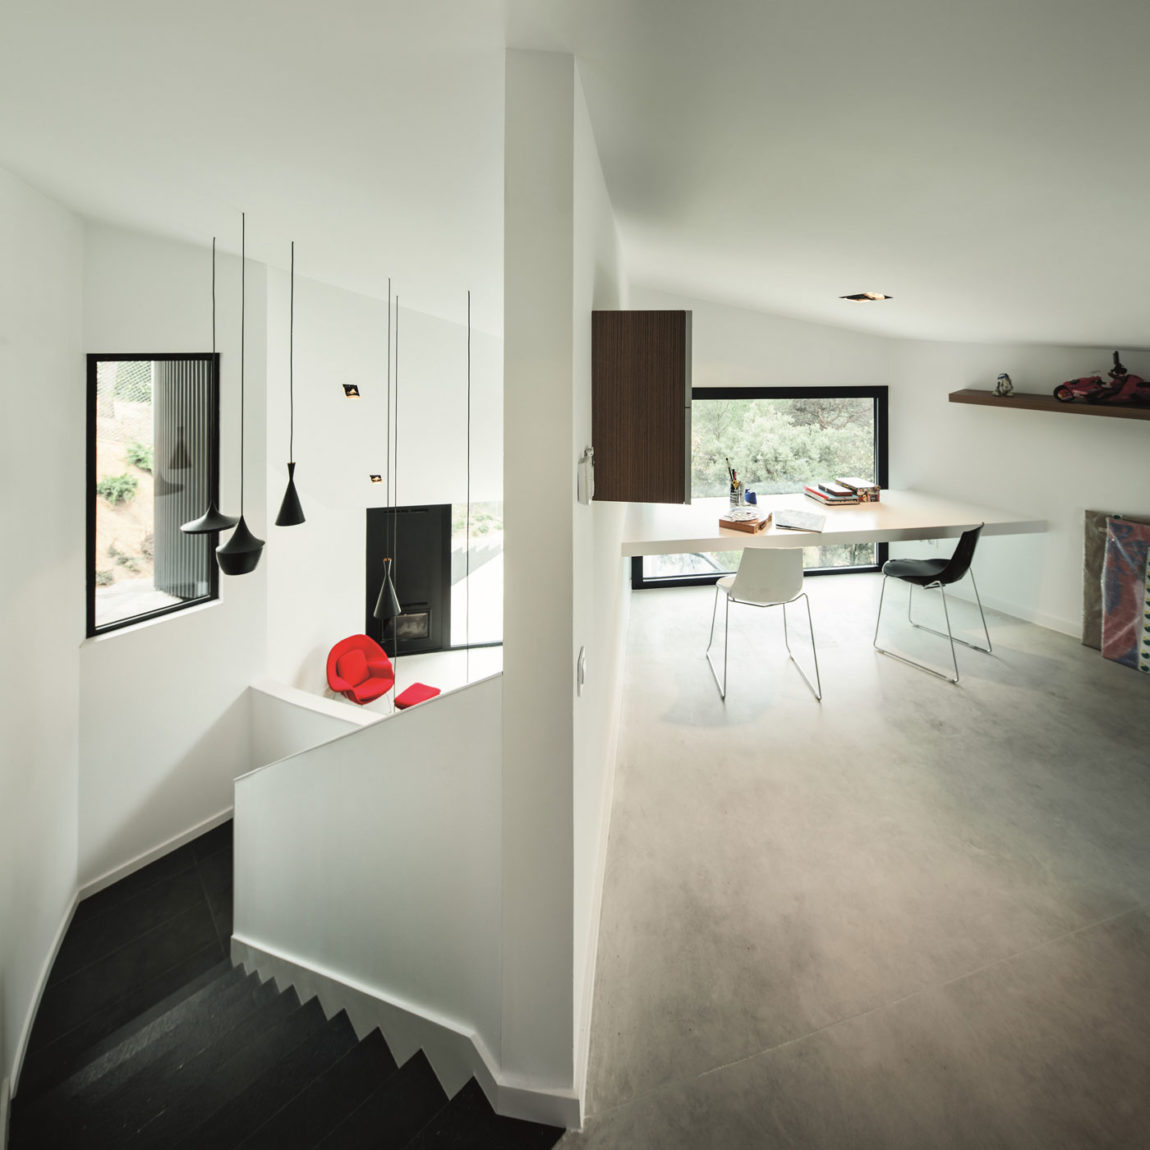 House AT by MIRAG Arquitectura i Gestió (7)